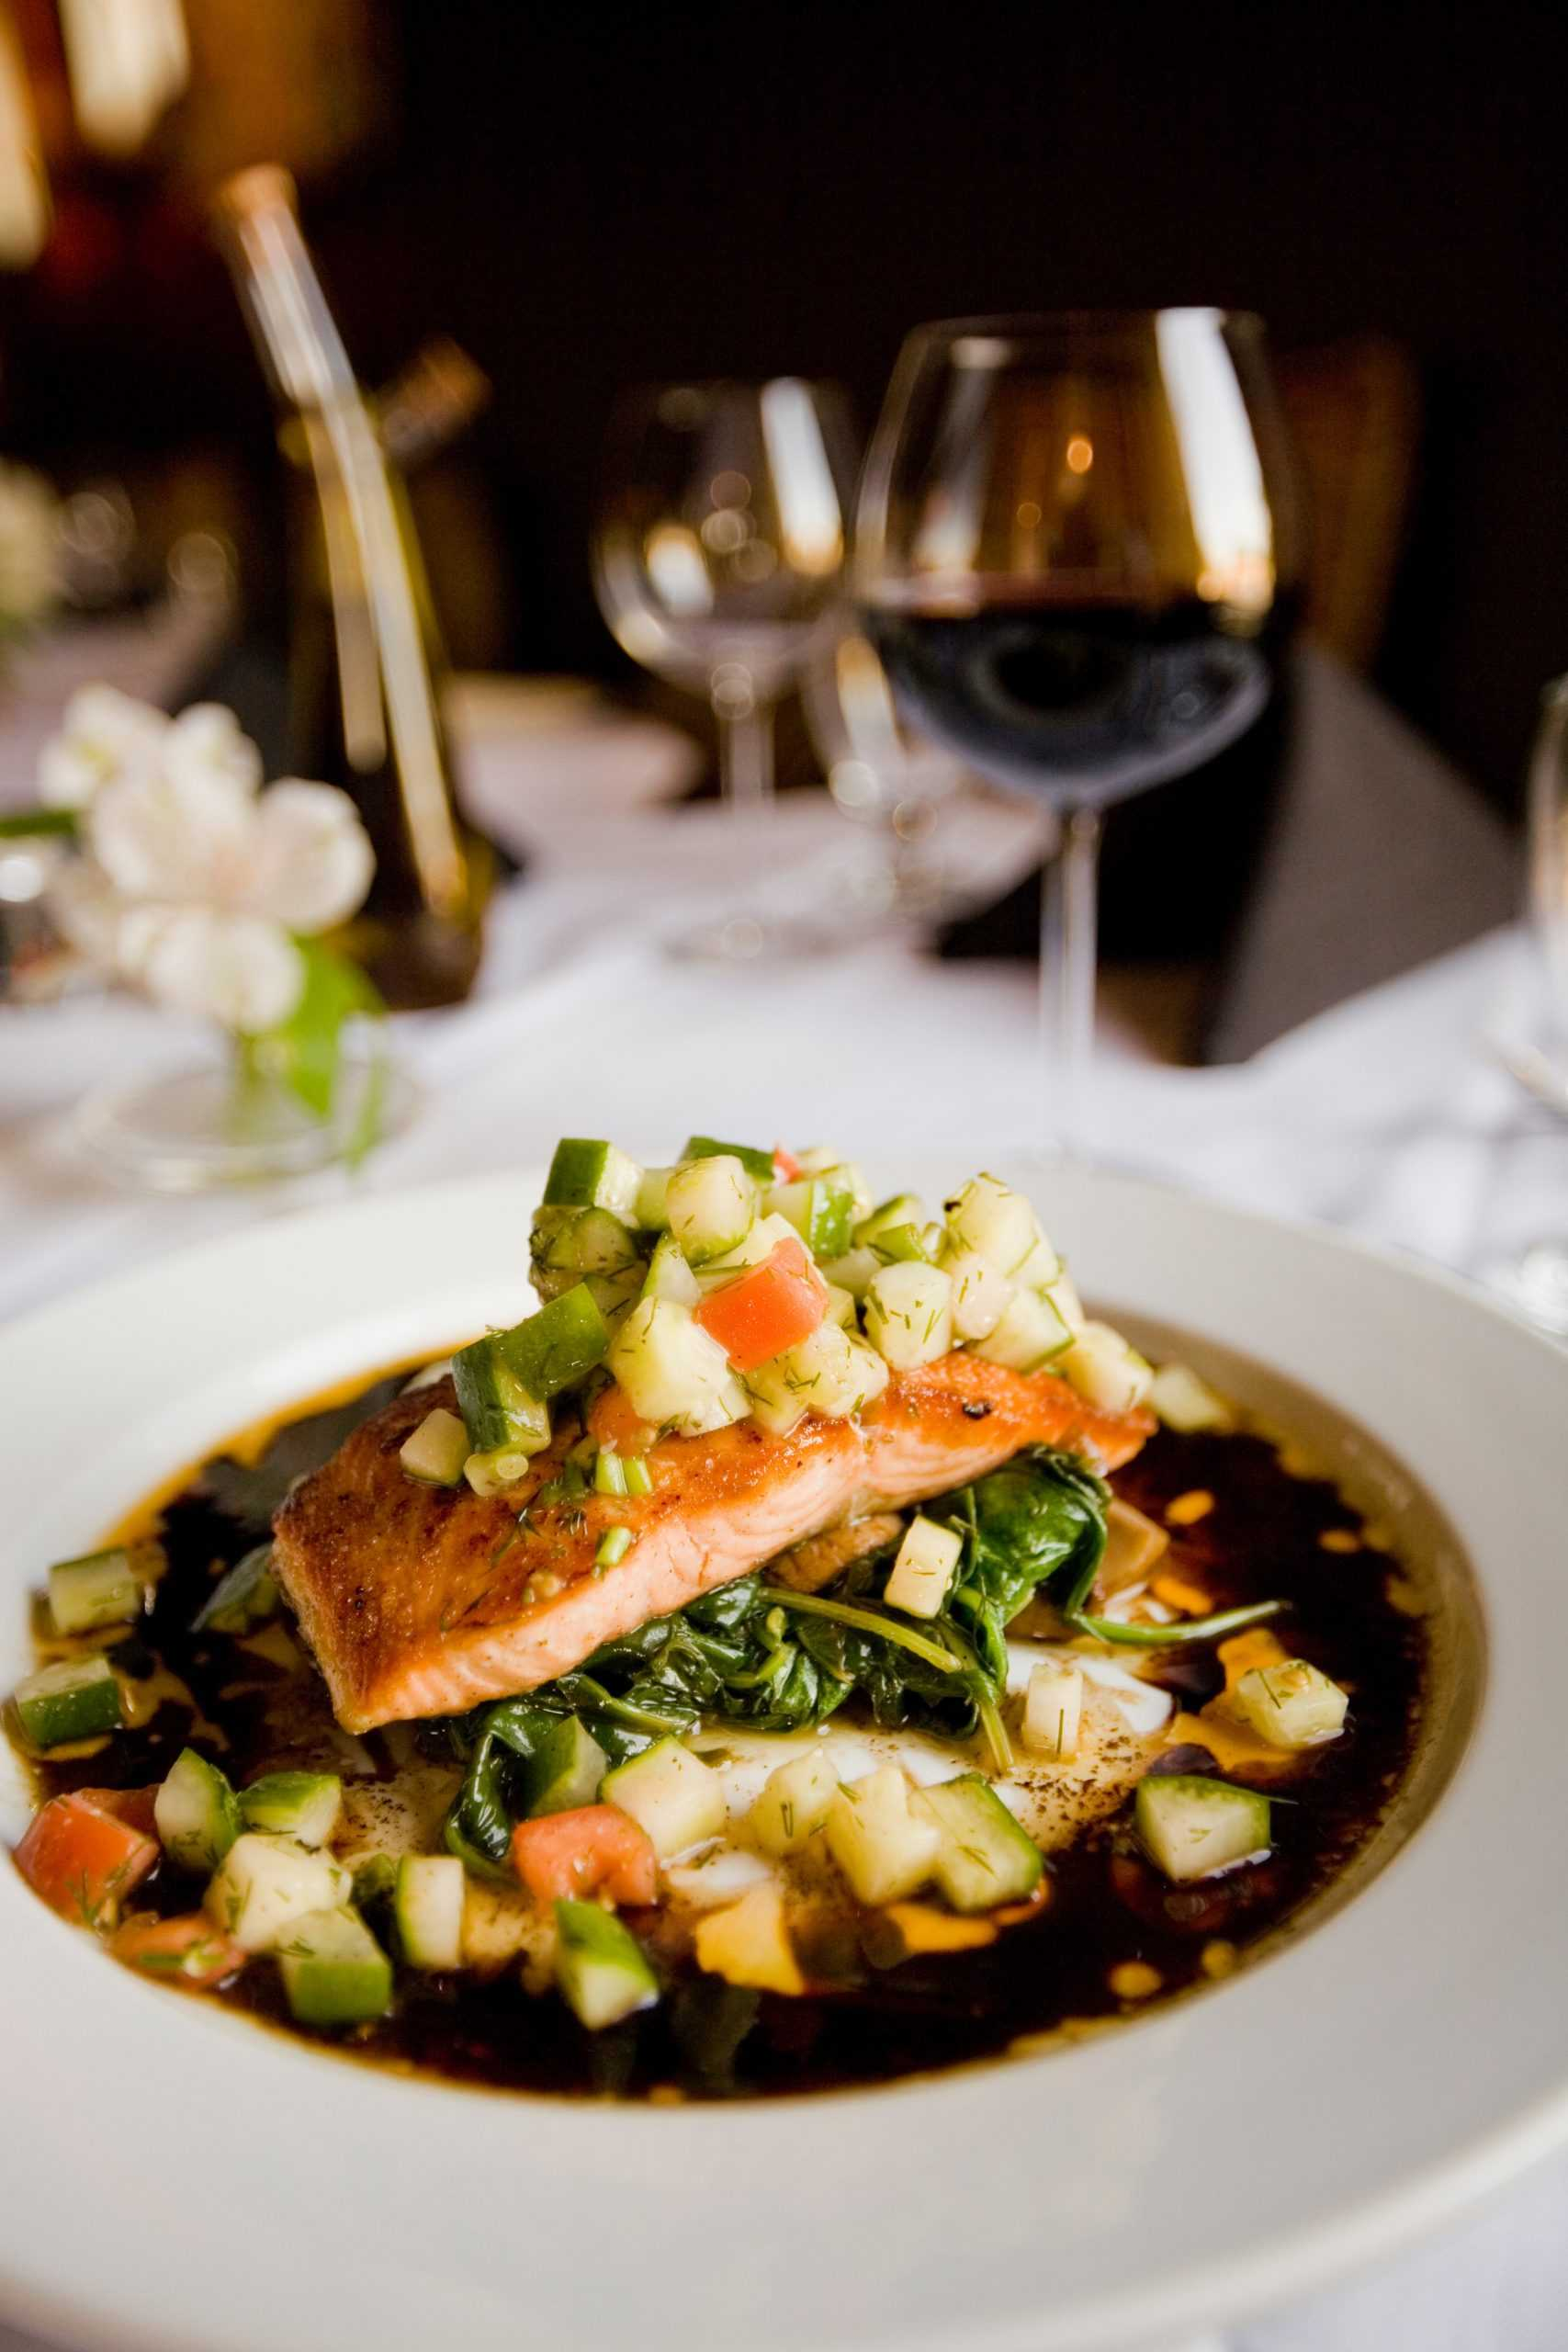 Salmon and vegetables on a plate and glass of red wine